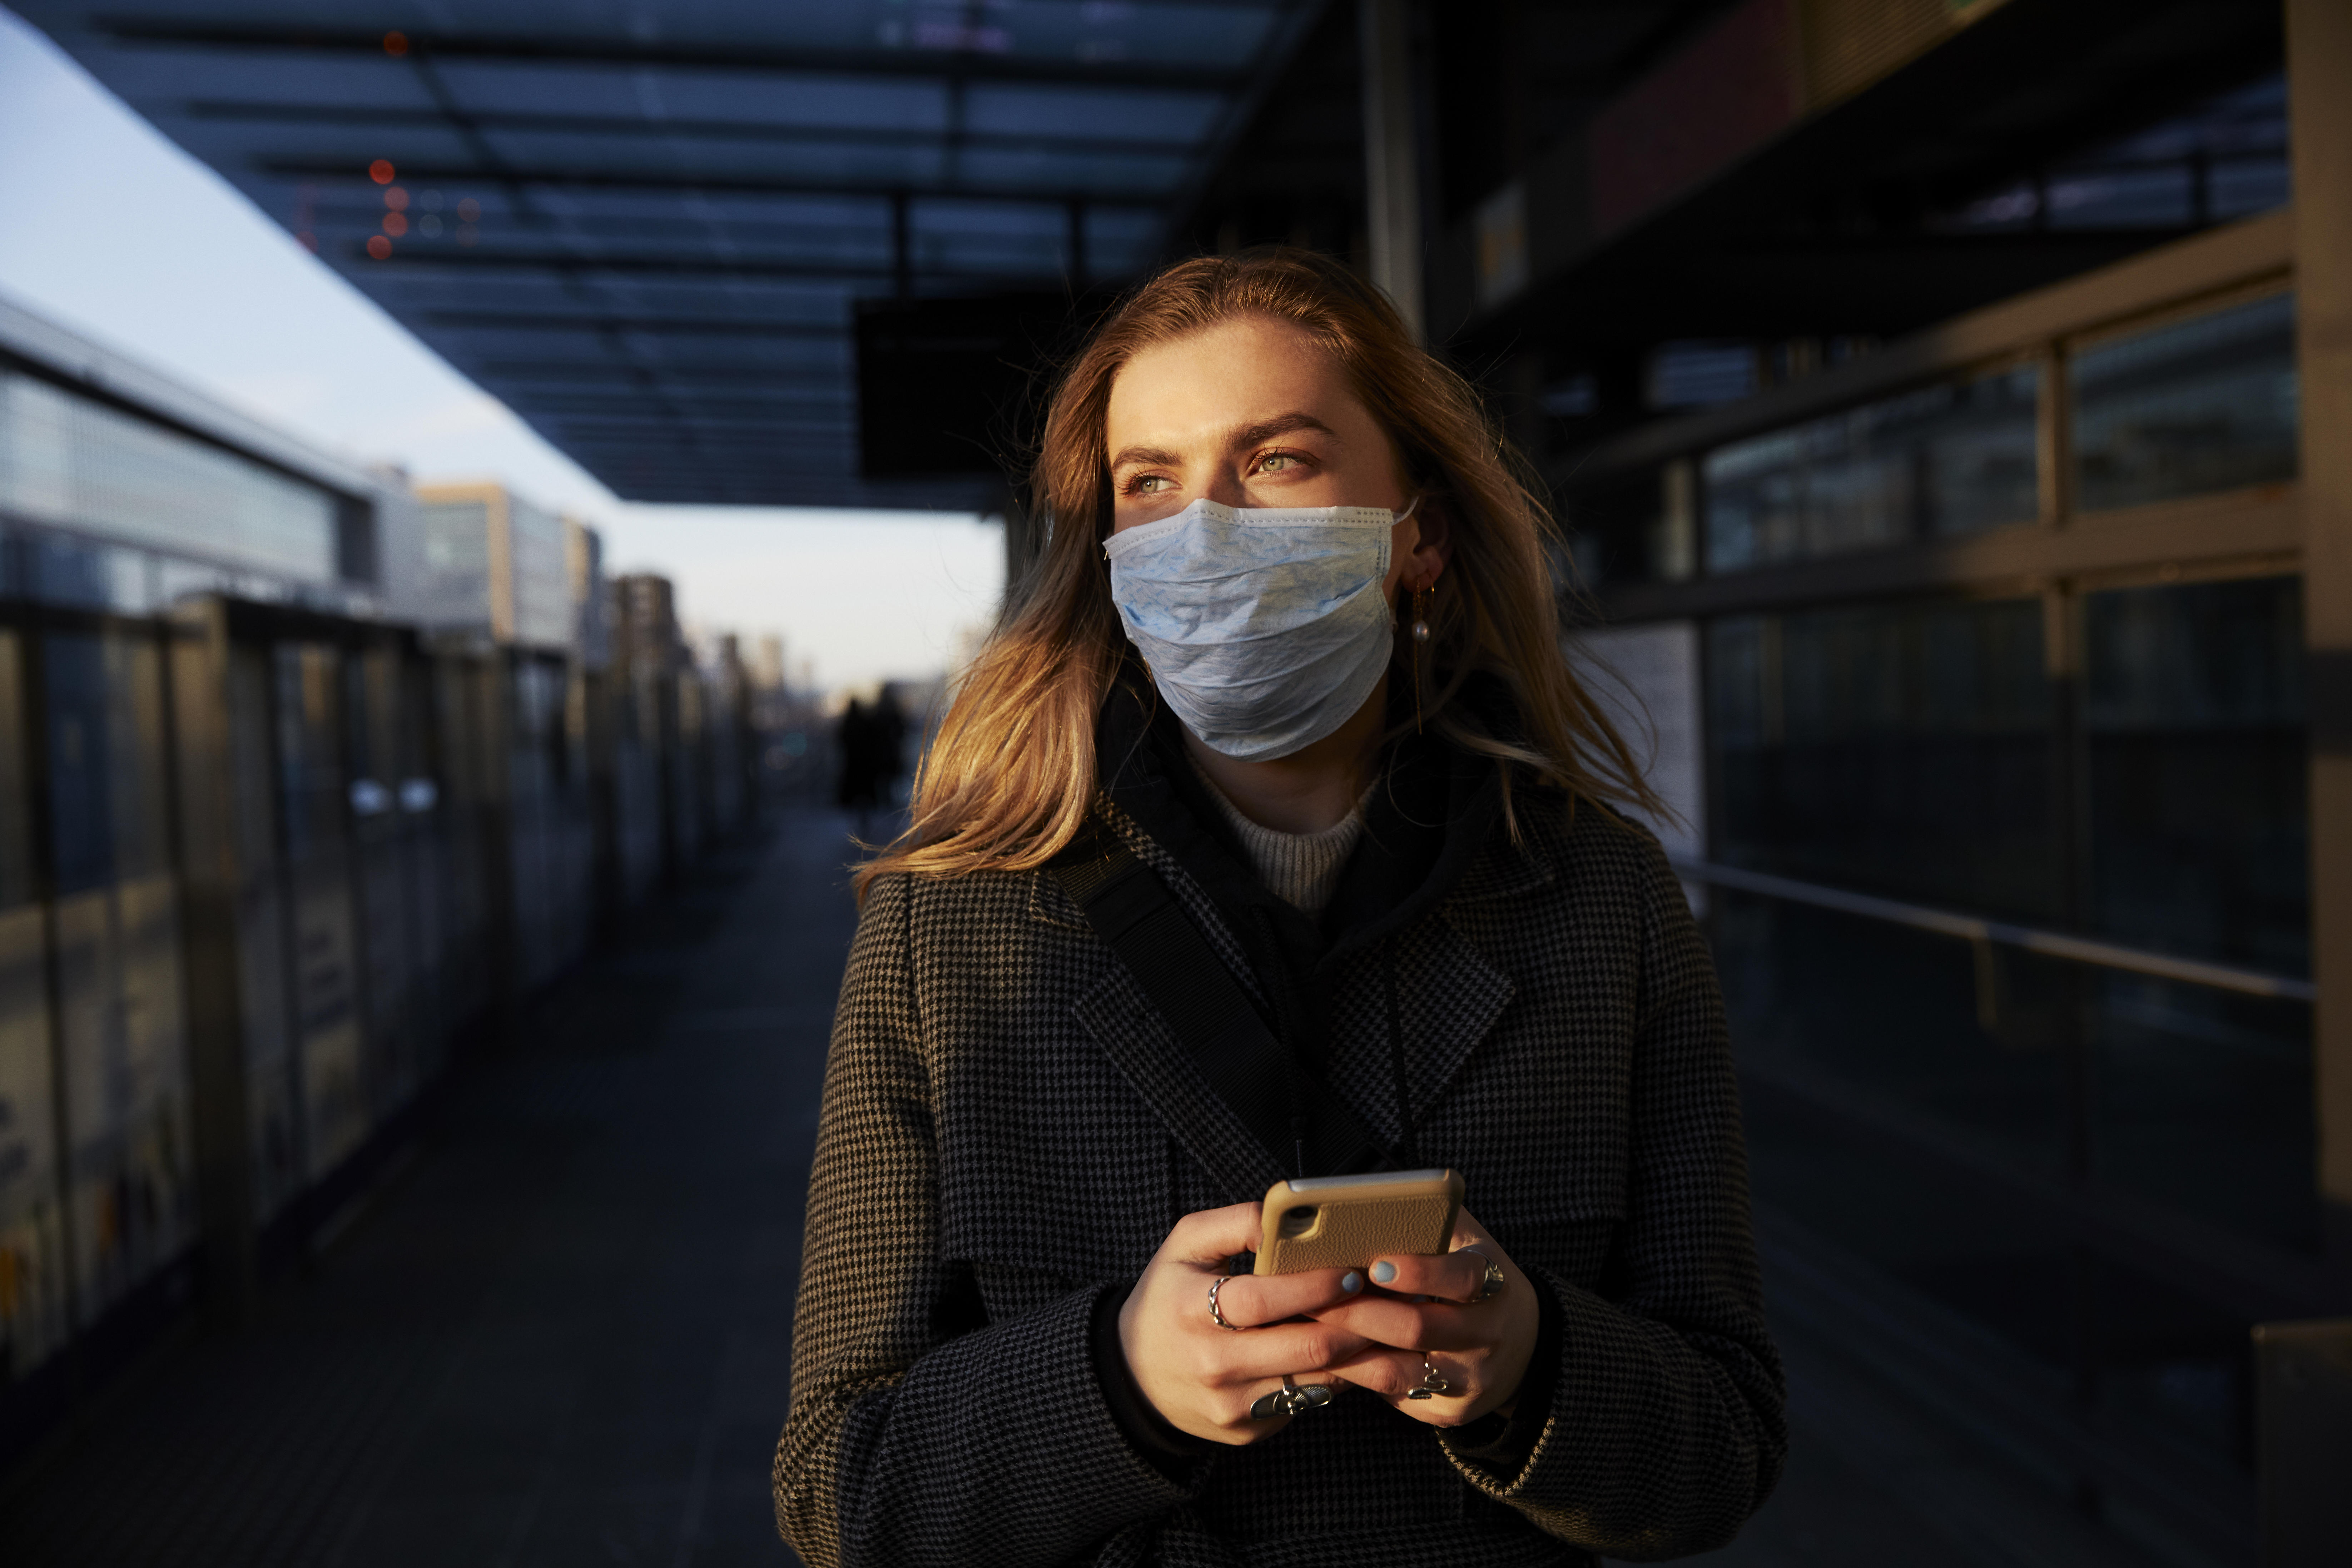 Coronavirus could soon be detected simply by spitting on a smartphone